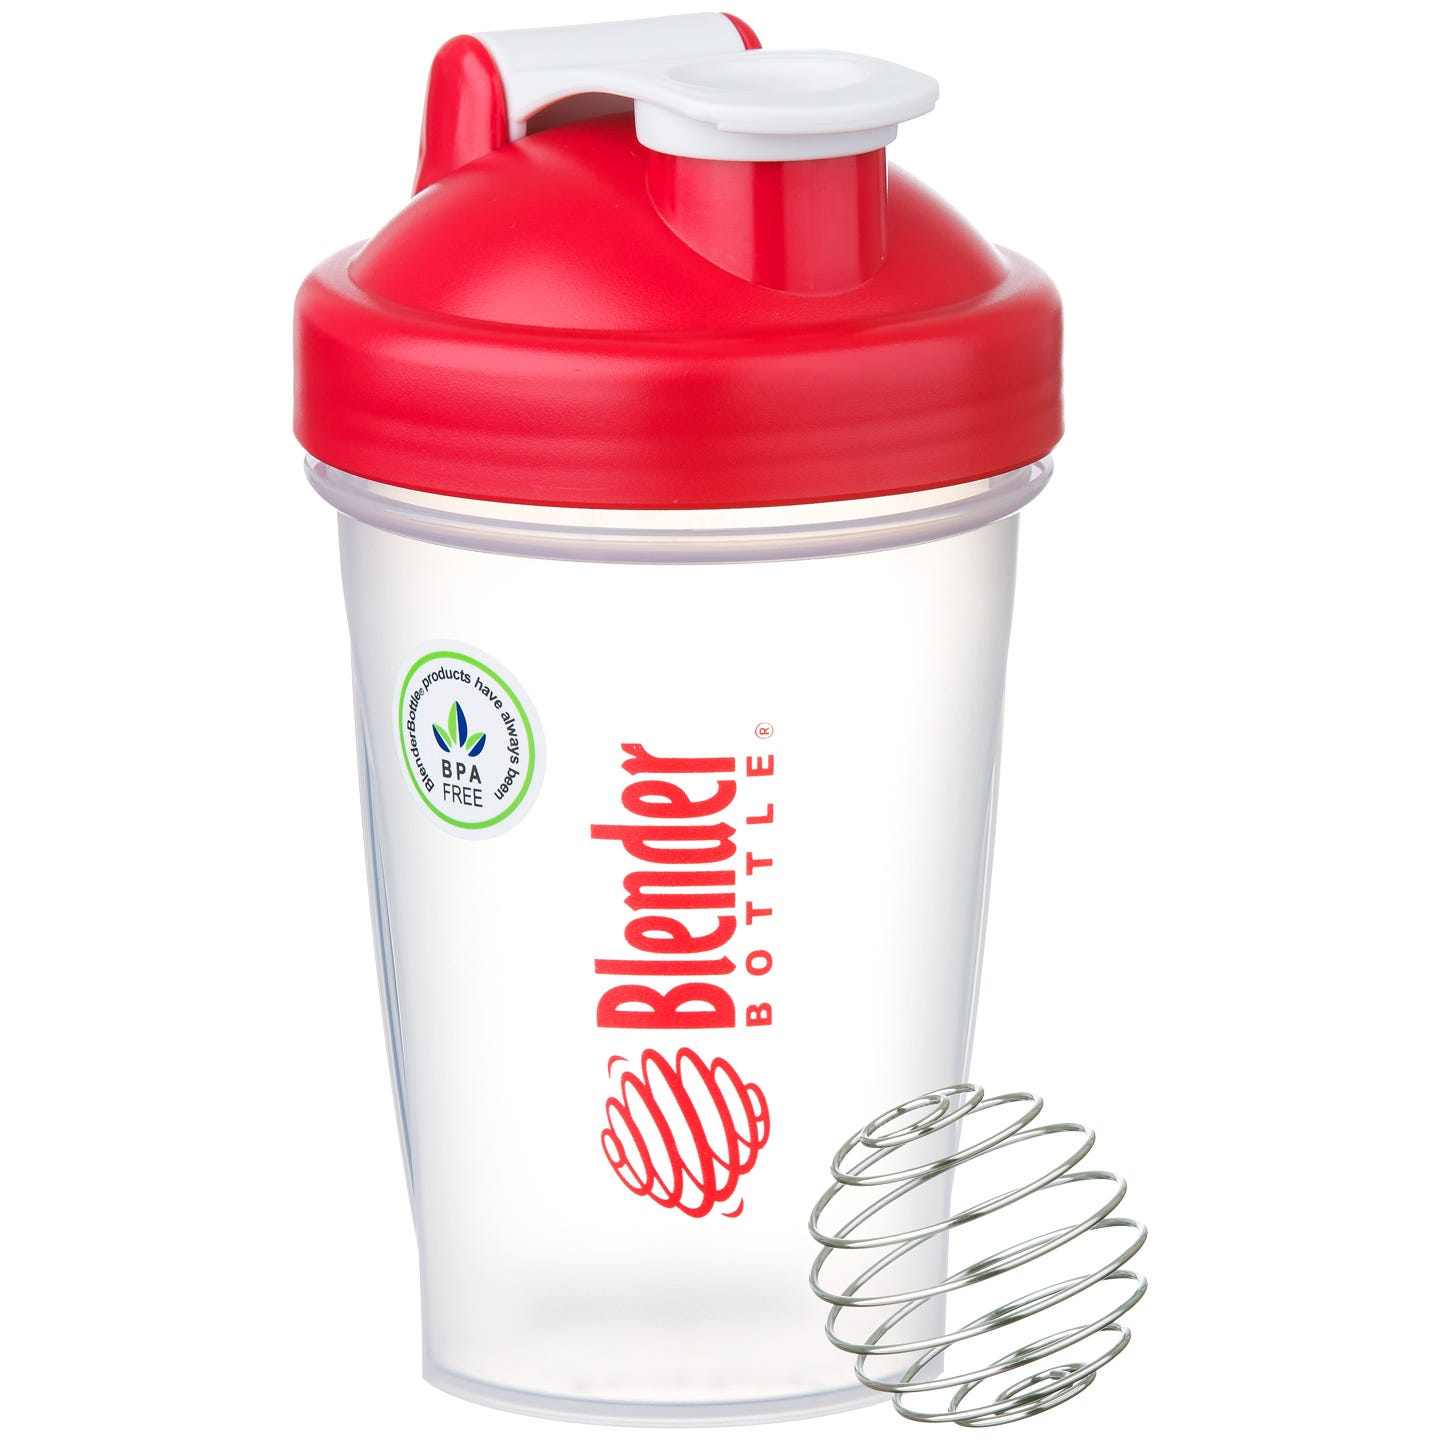 Blender Bottle, 20 oz. - Red